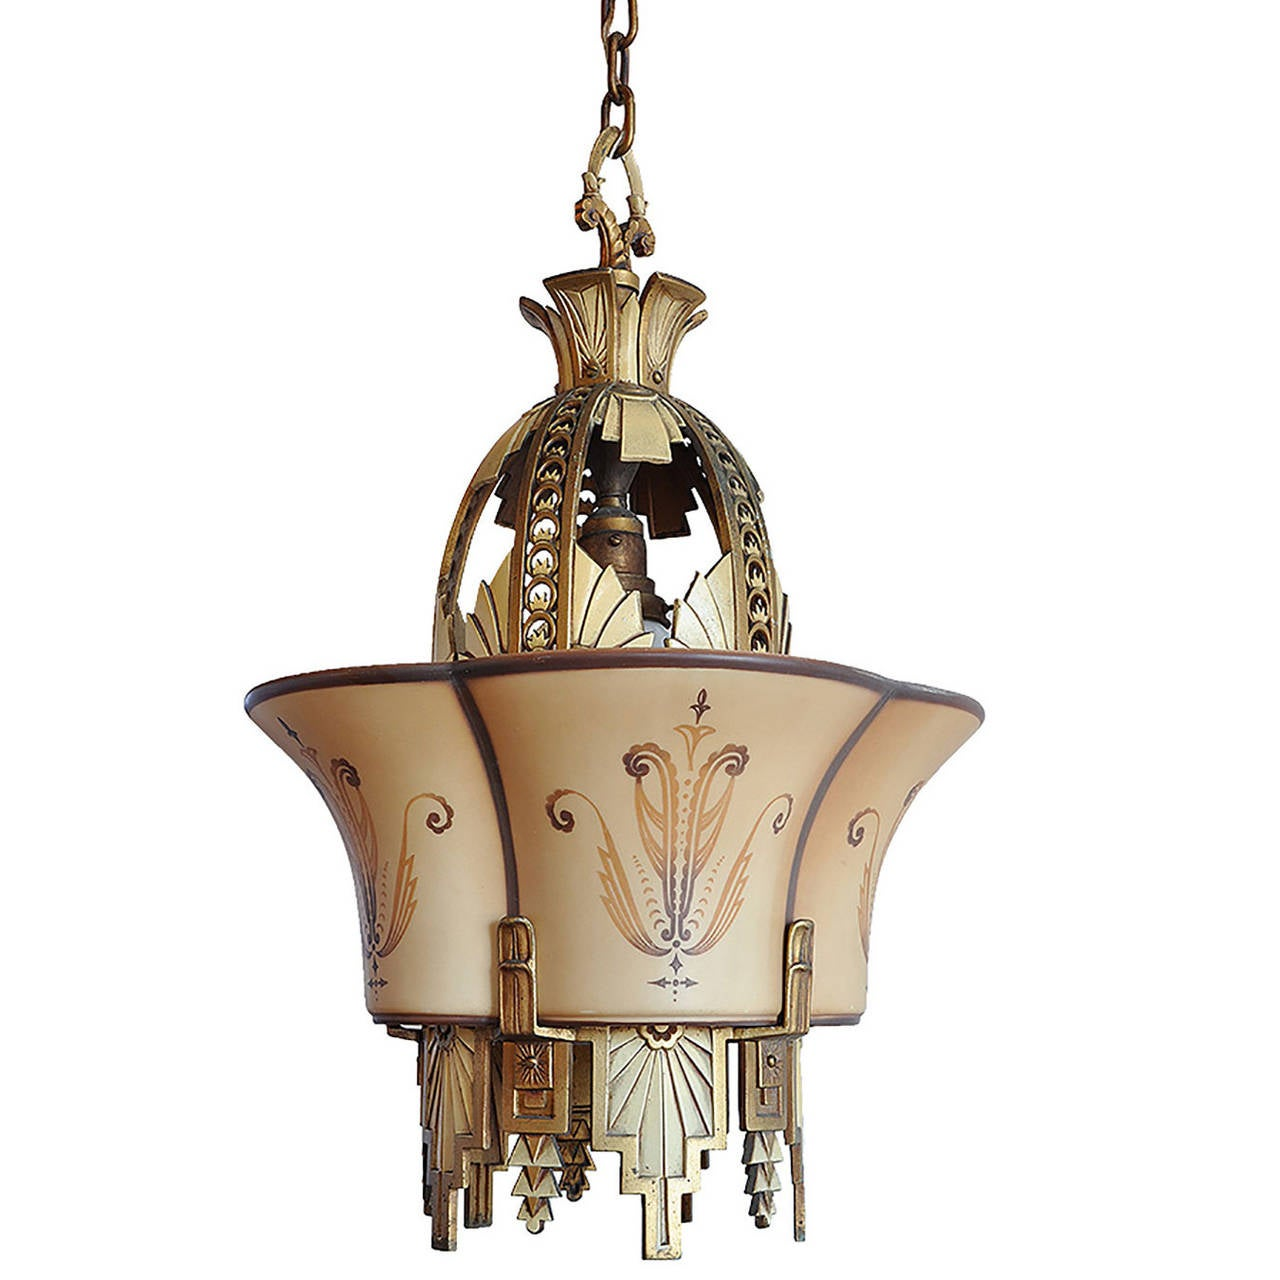 R williamson and co beardslee art deco chandelier at 1stdibs beardslee art deco chandelier 1 arubaitofo Image collections